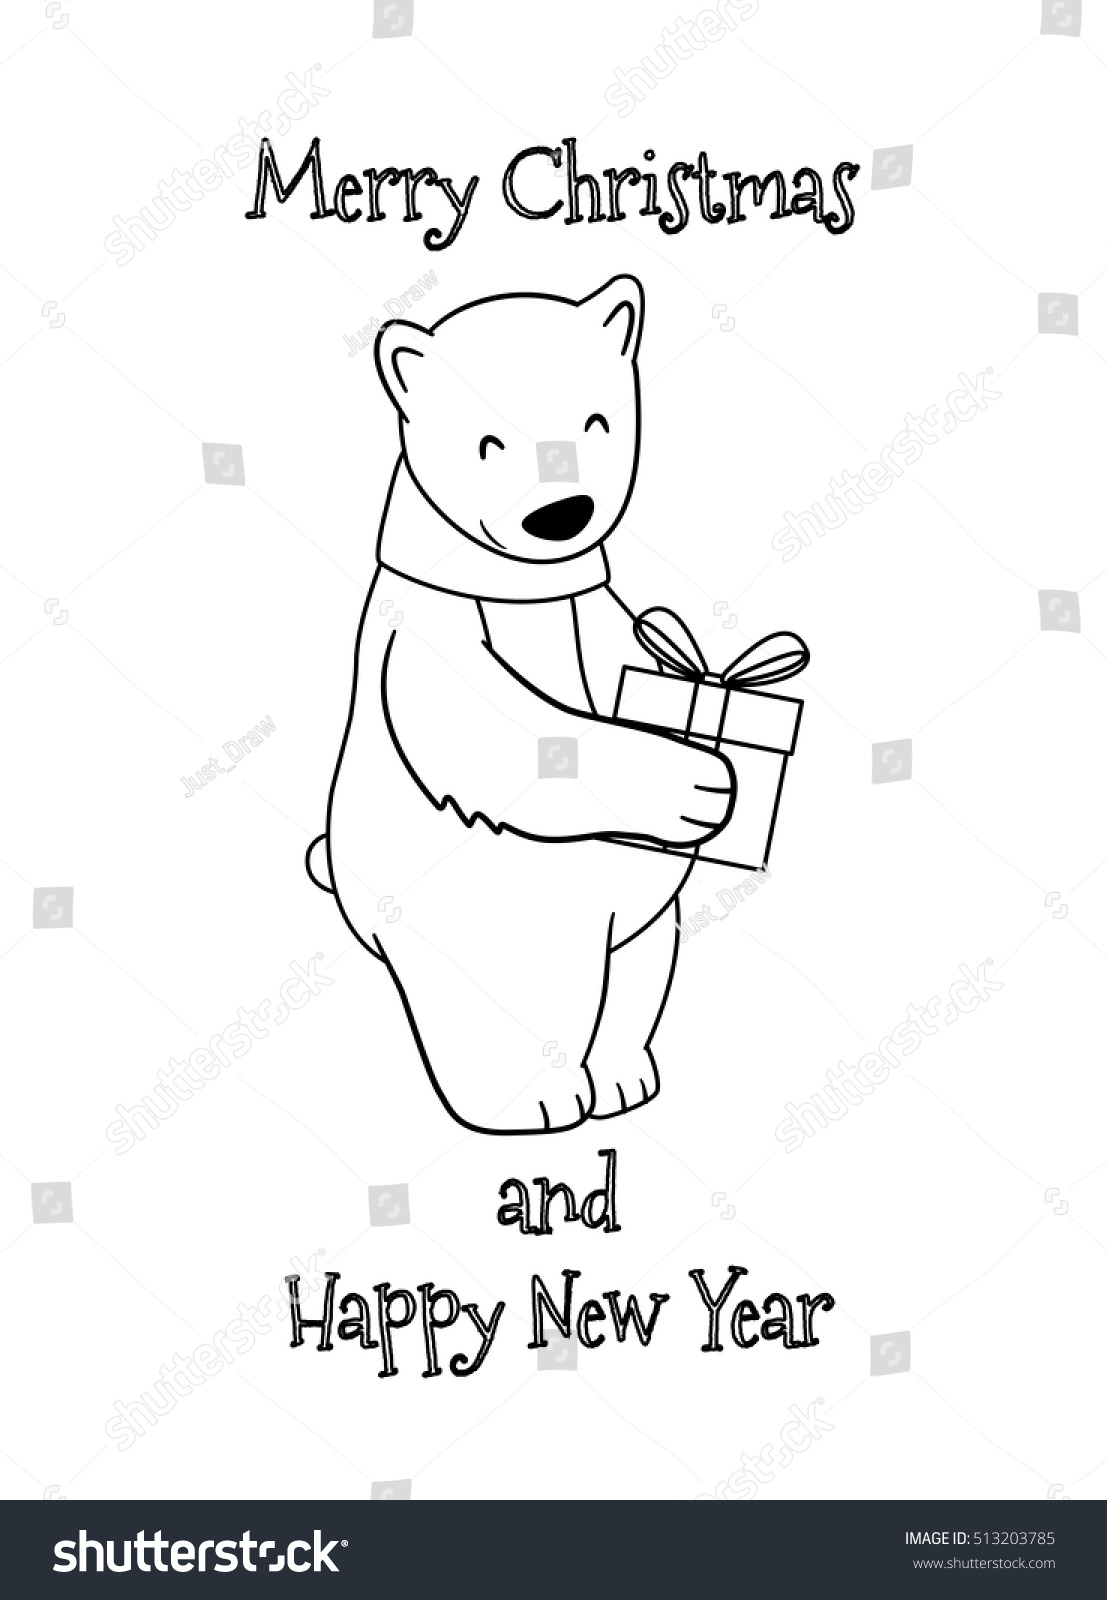 Merry Christmas And Happy New Year Coloring Pages With Cute Cartoon Polar Bear Gift Stock Vector Royalty Free